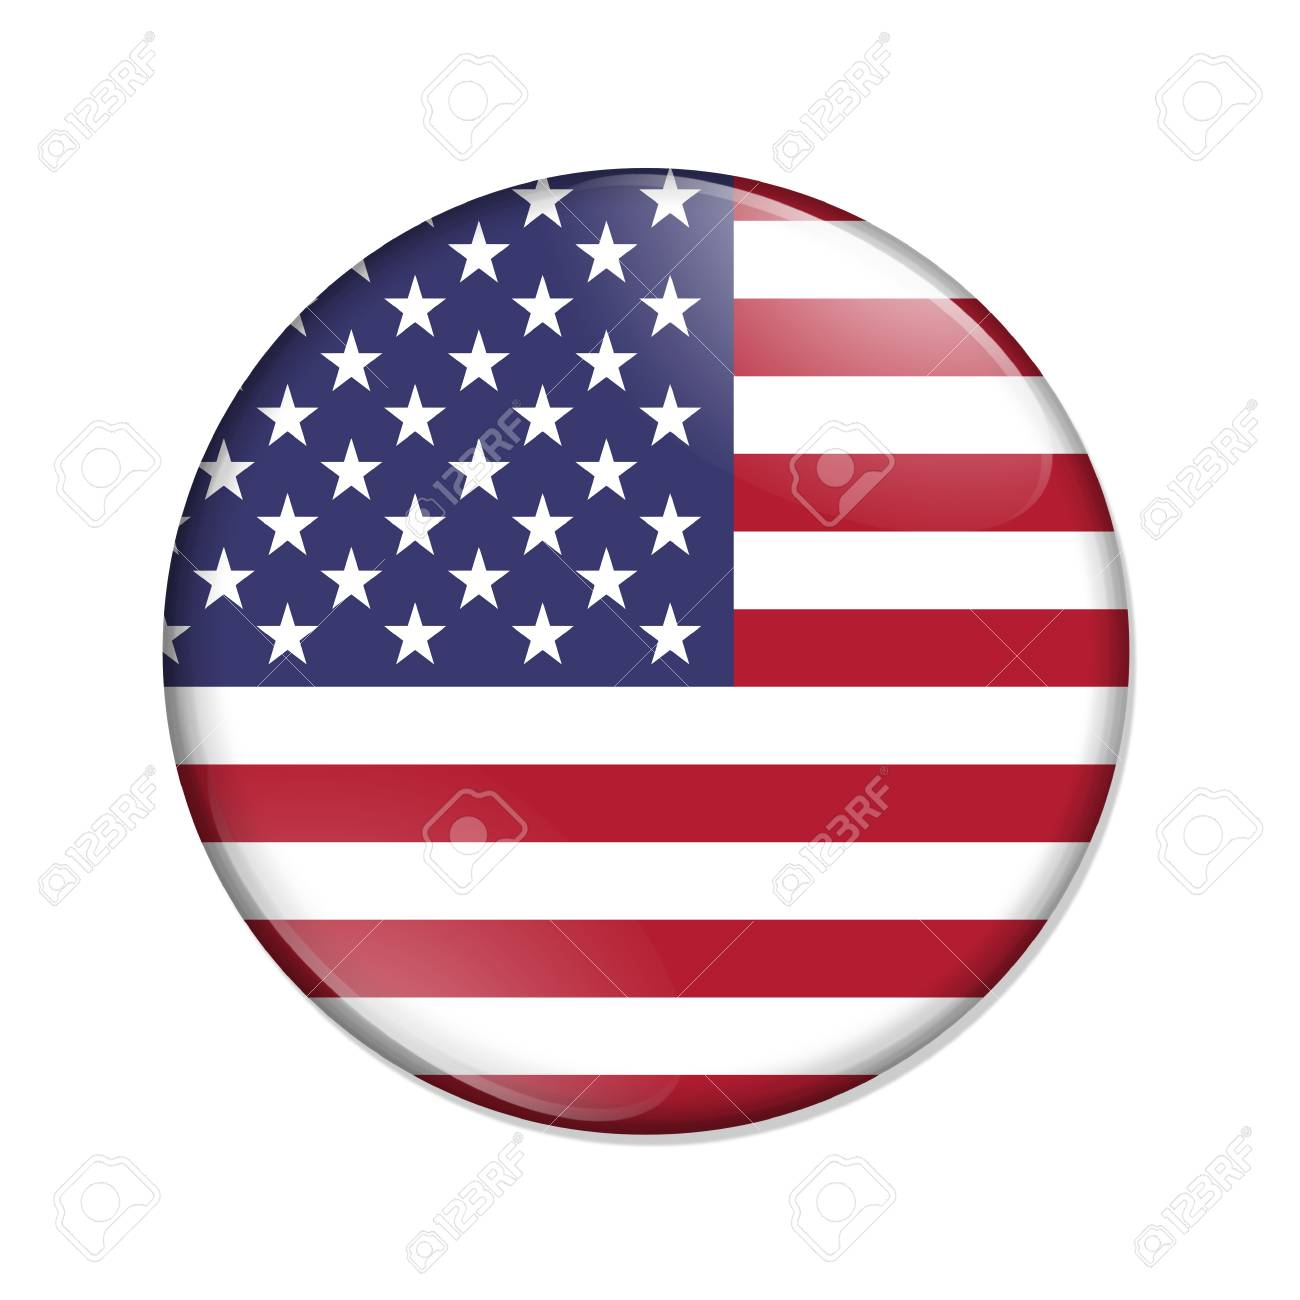 United States country on a flag badge button isolated over white - 124626687